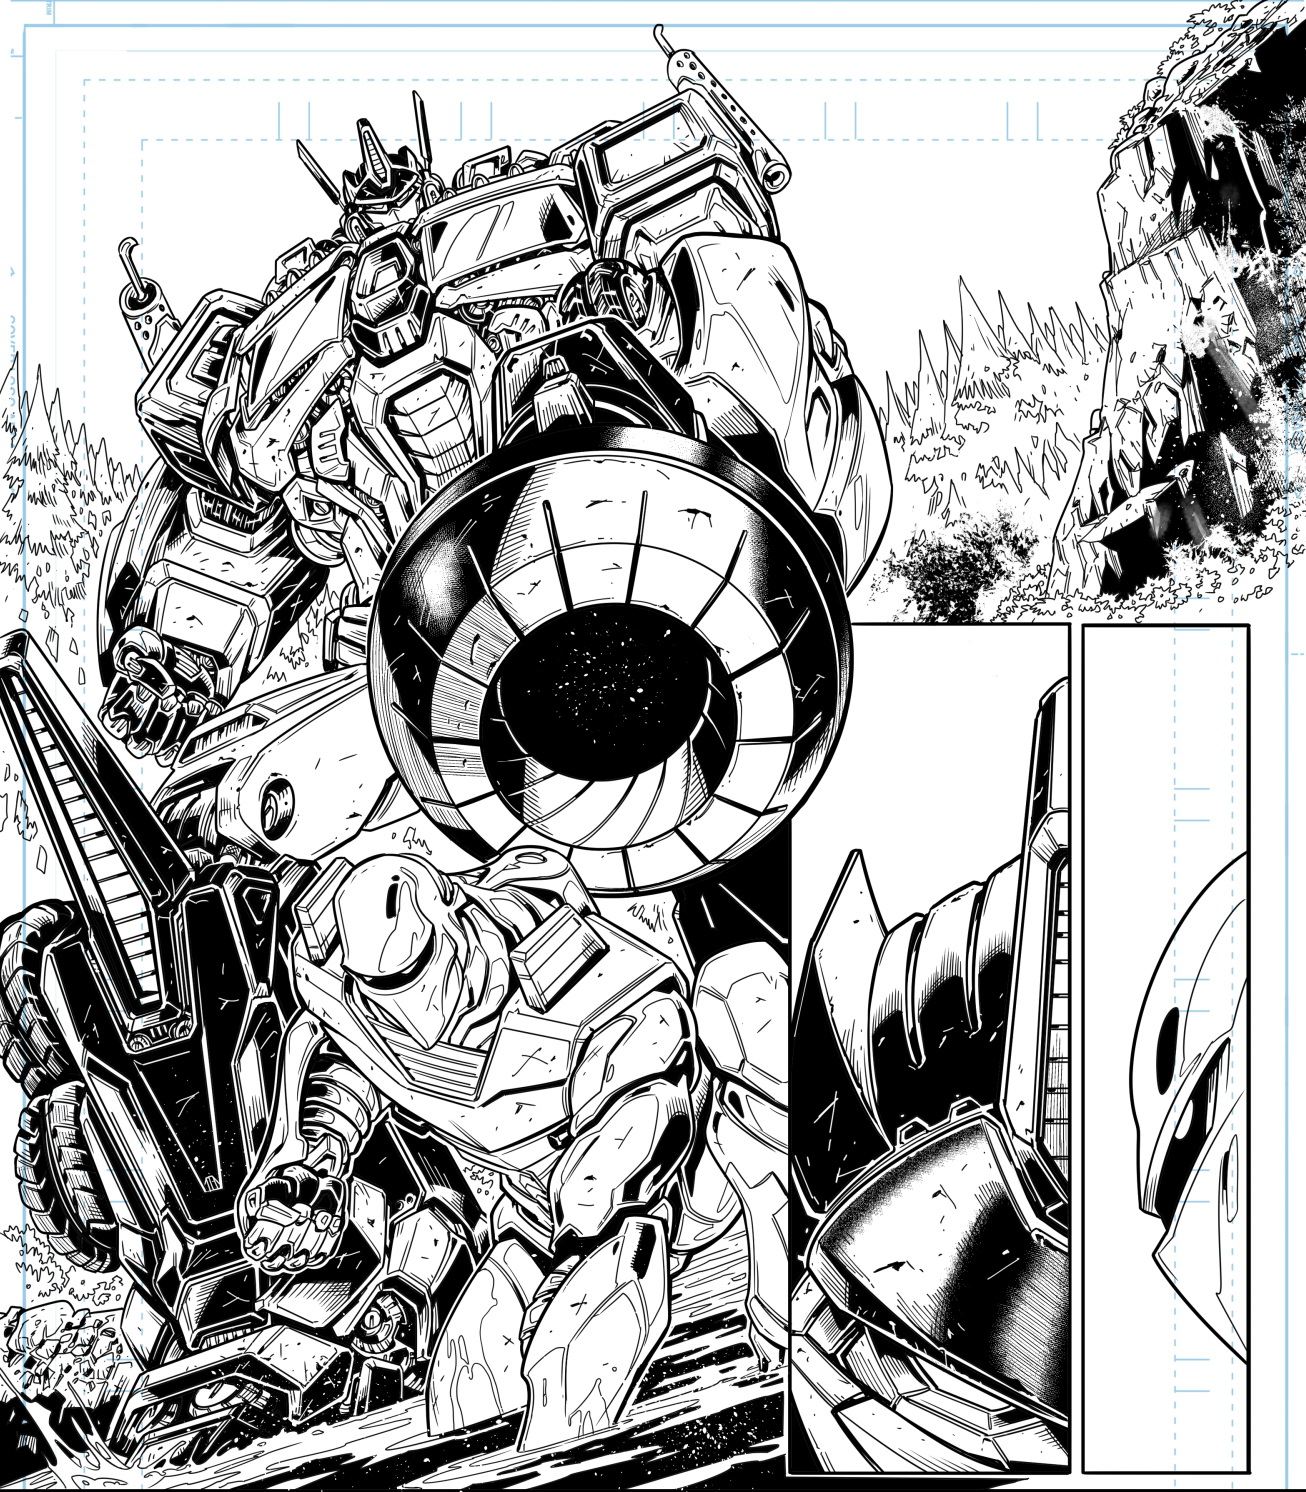 rev_02_inks_page3